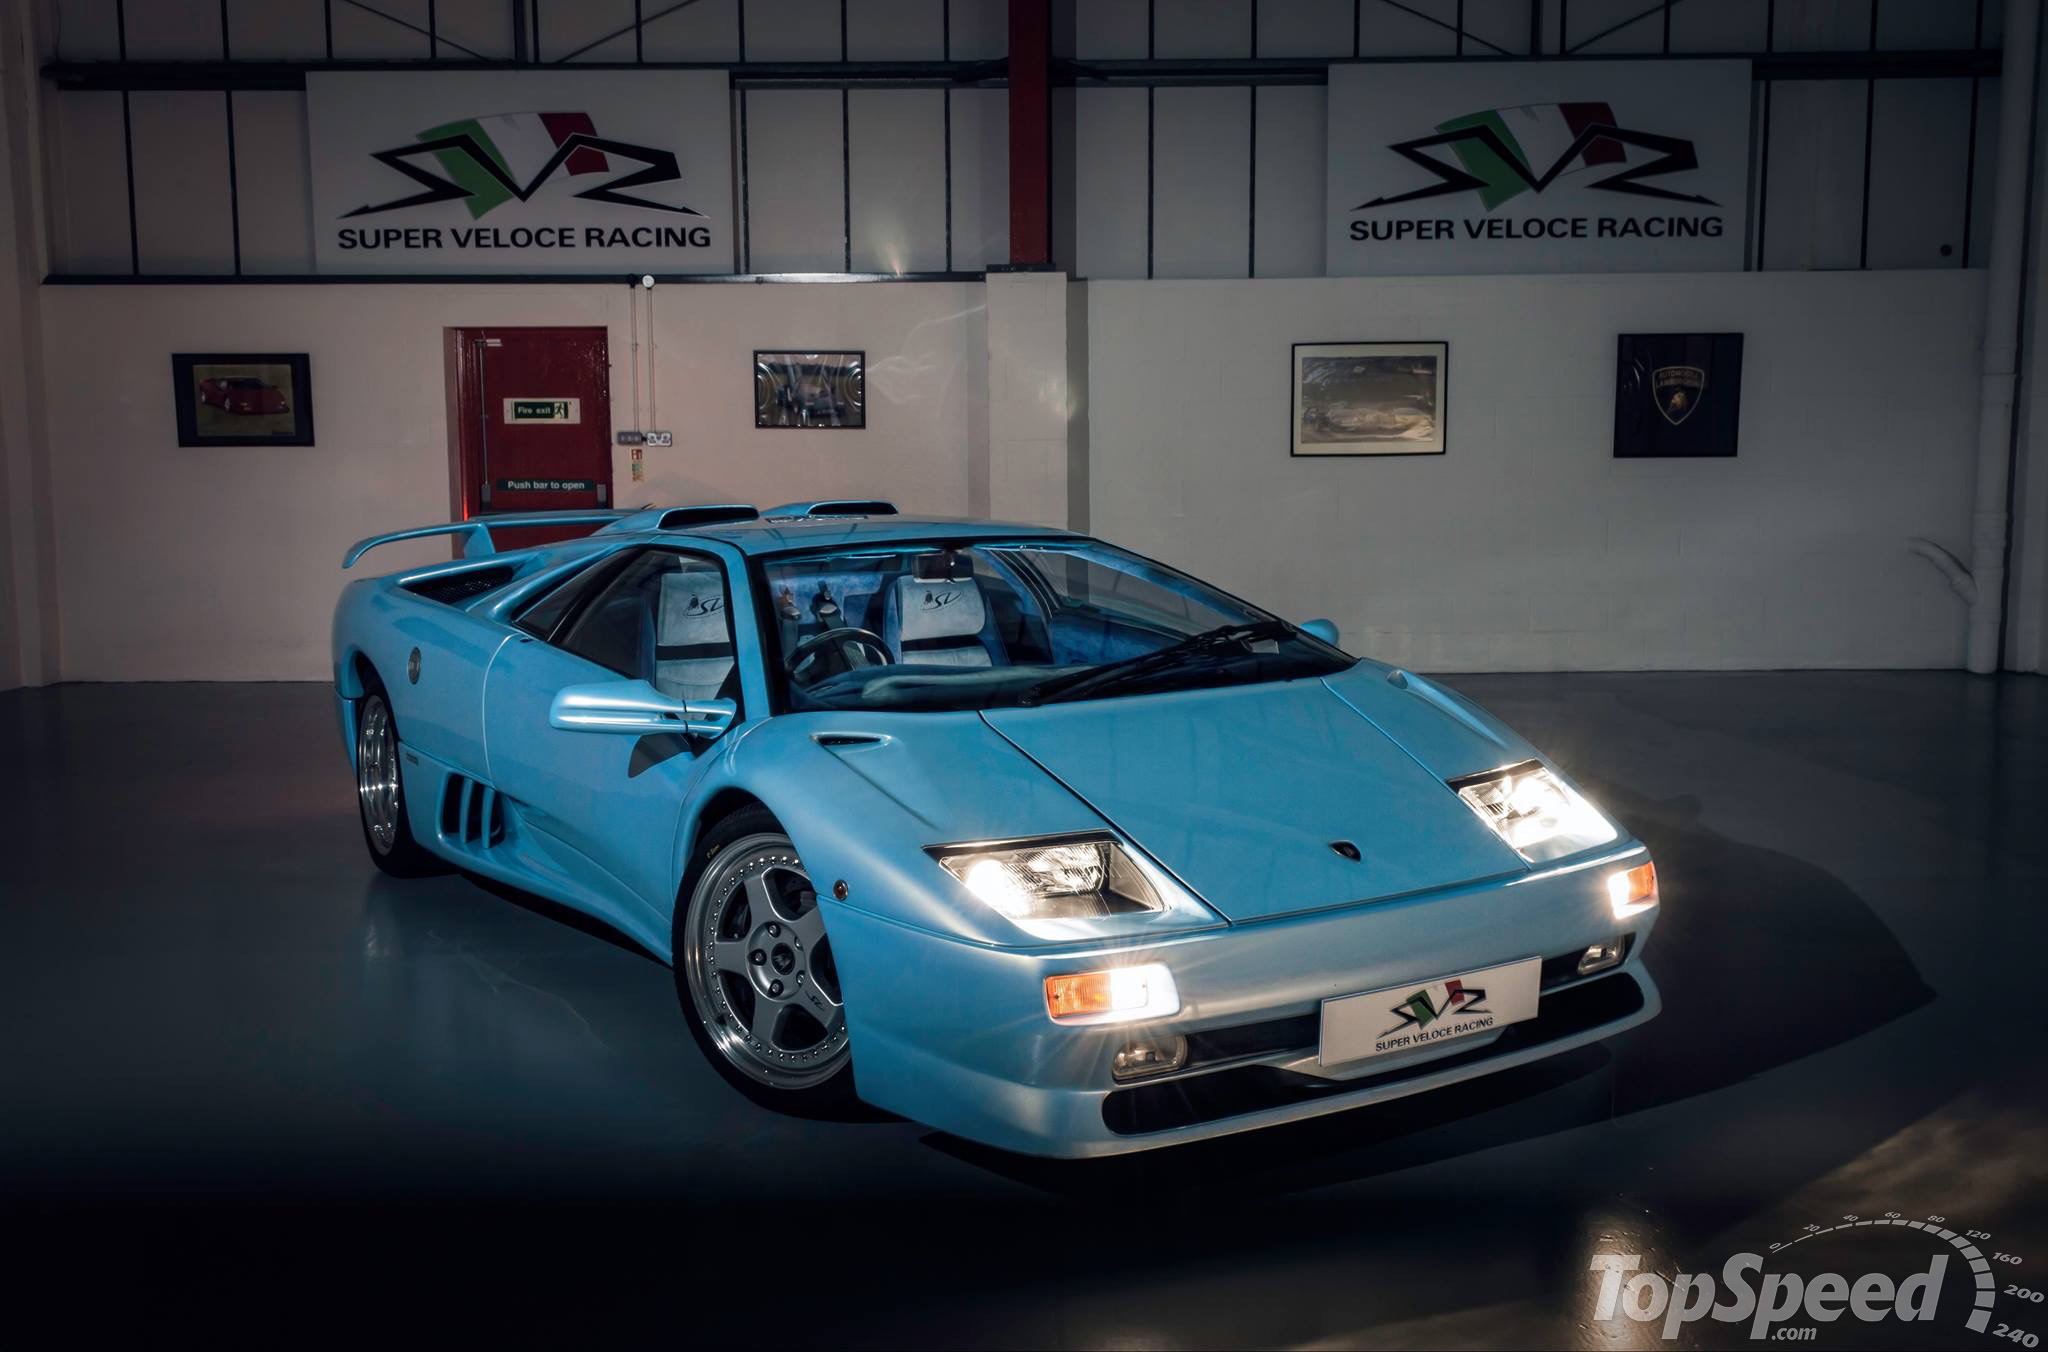 1995 Lamborghini Diablo SV By Super Veloce Racing | Top Speed. »